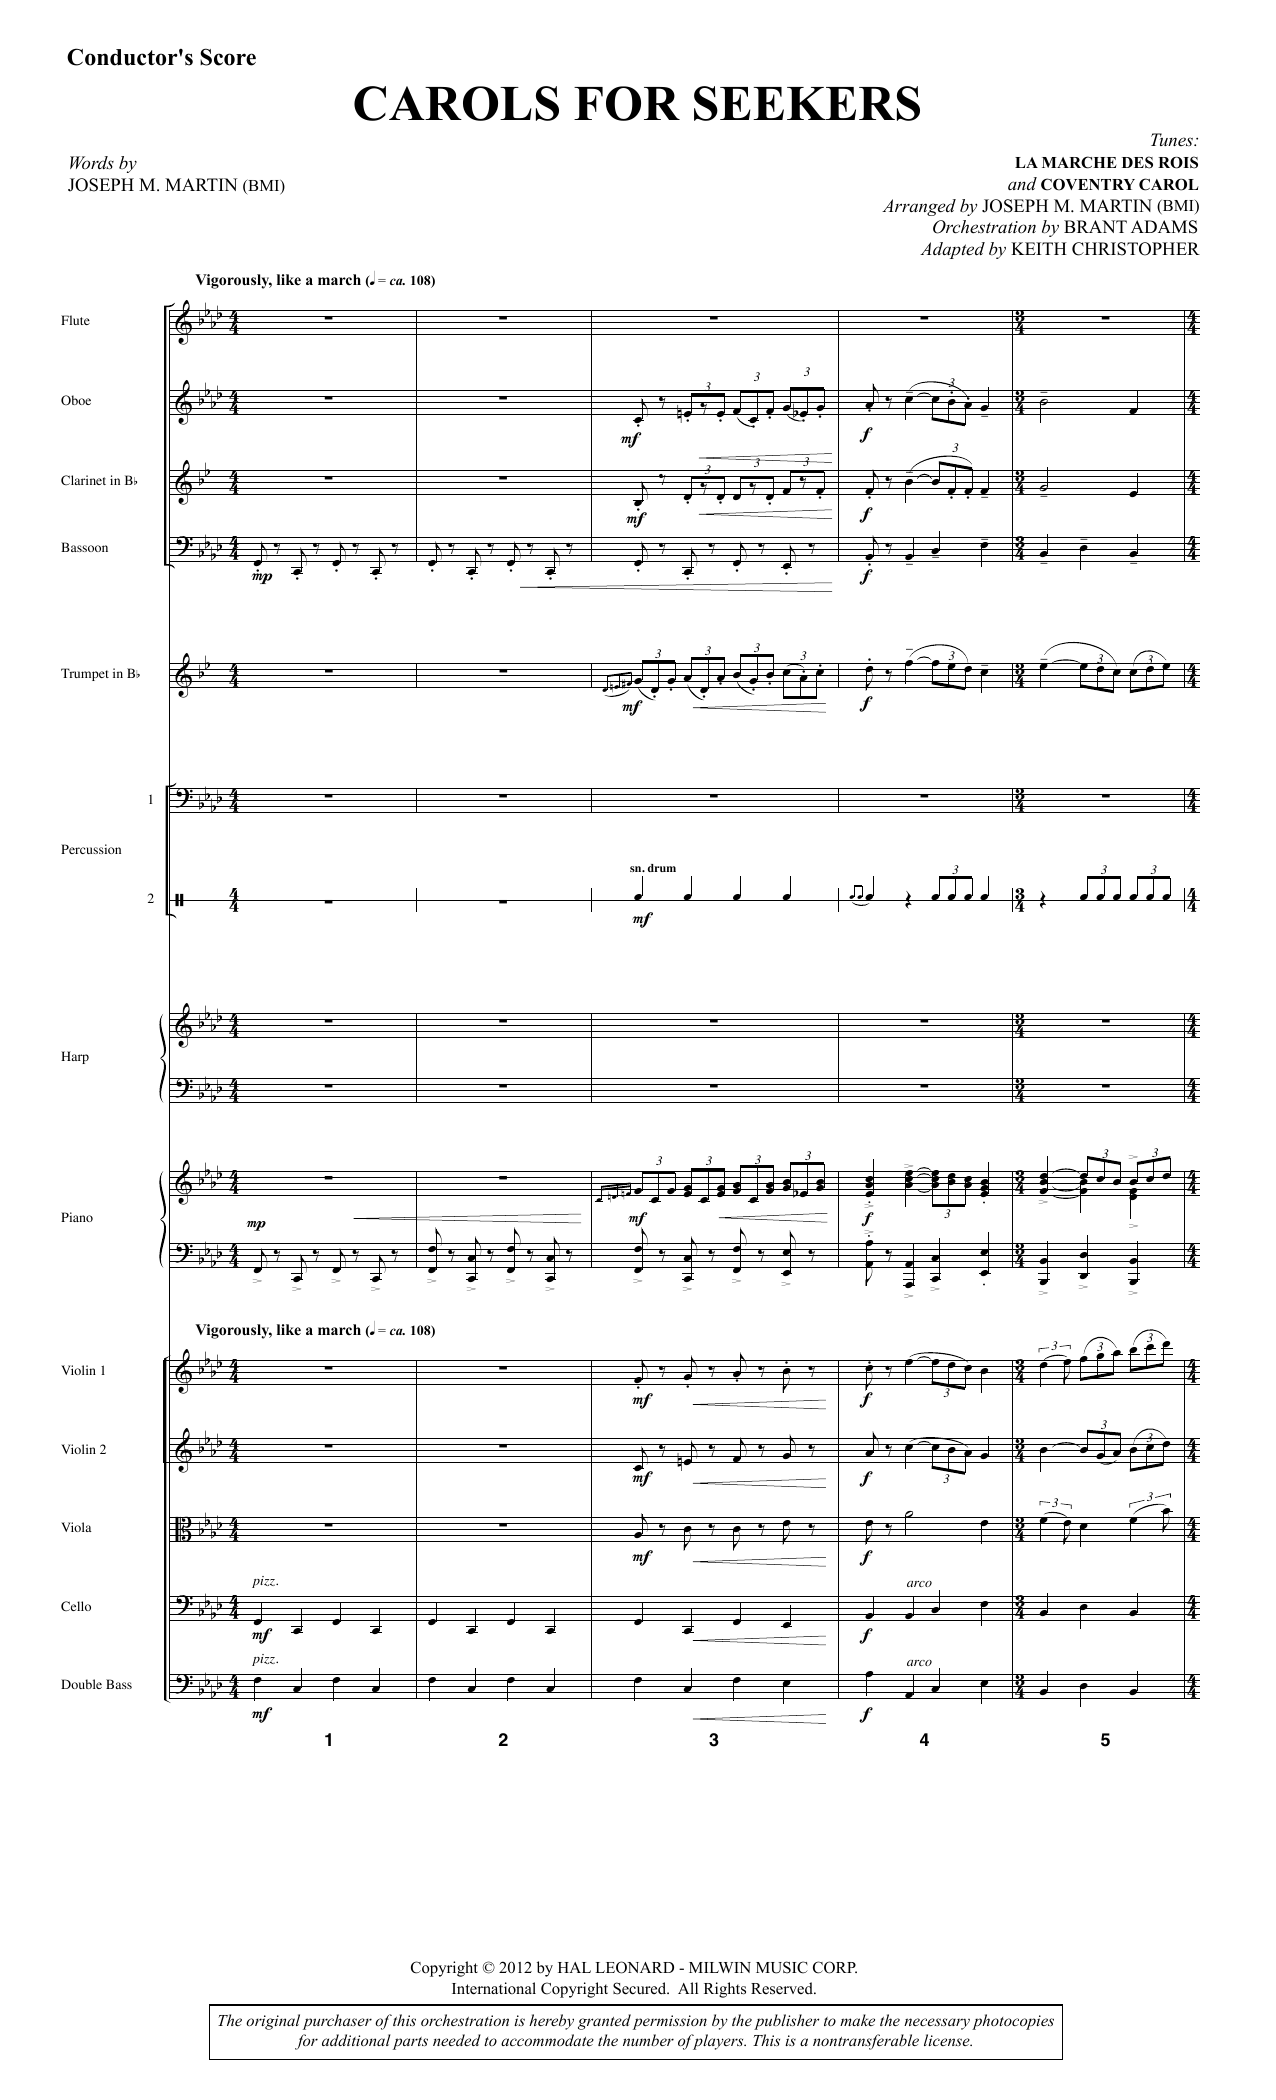 Carols for Seekers (COMPLETE) sheet music for orchestra/band by Joseph M. Martin